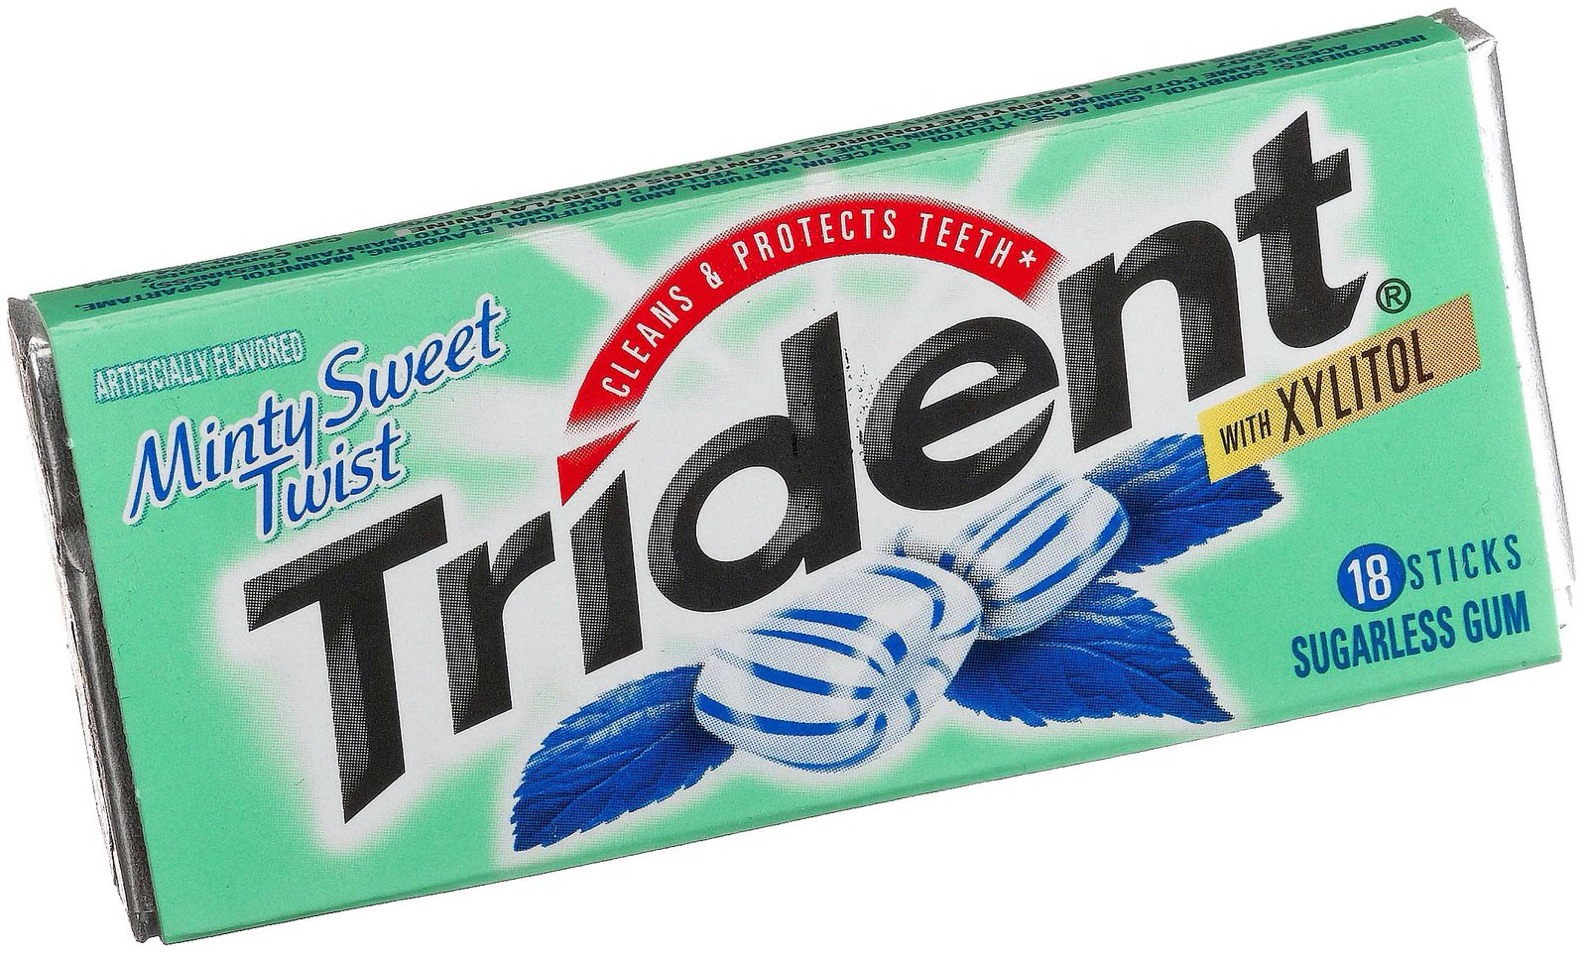 Chew sugarfree gum. With only 3 calories per stick, trident gum is one of my favorites. Sugarfree gum satisfies that sweet tooth as well as keeps our mouths busy and aids in digestion after a meal.